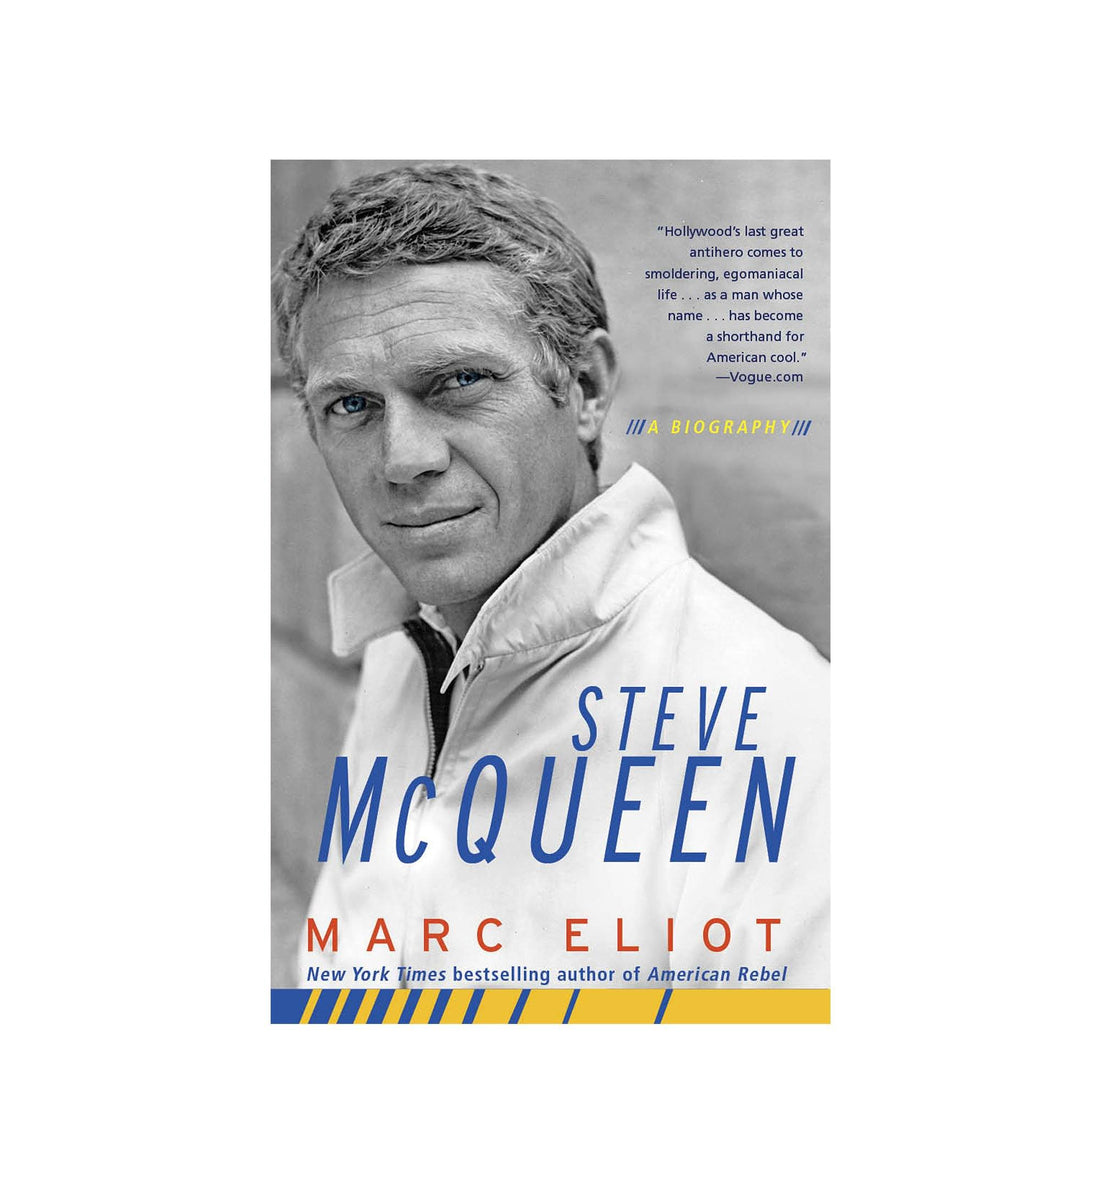 Steve McQueen - Paperback - Home Essentials - Iron and Resin